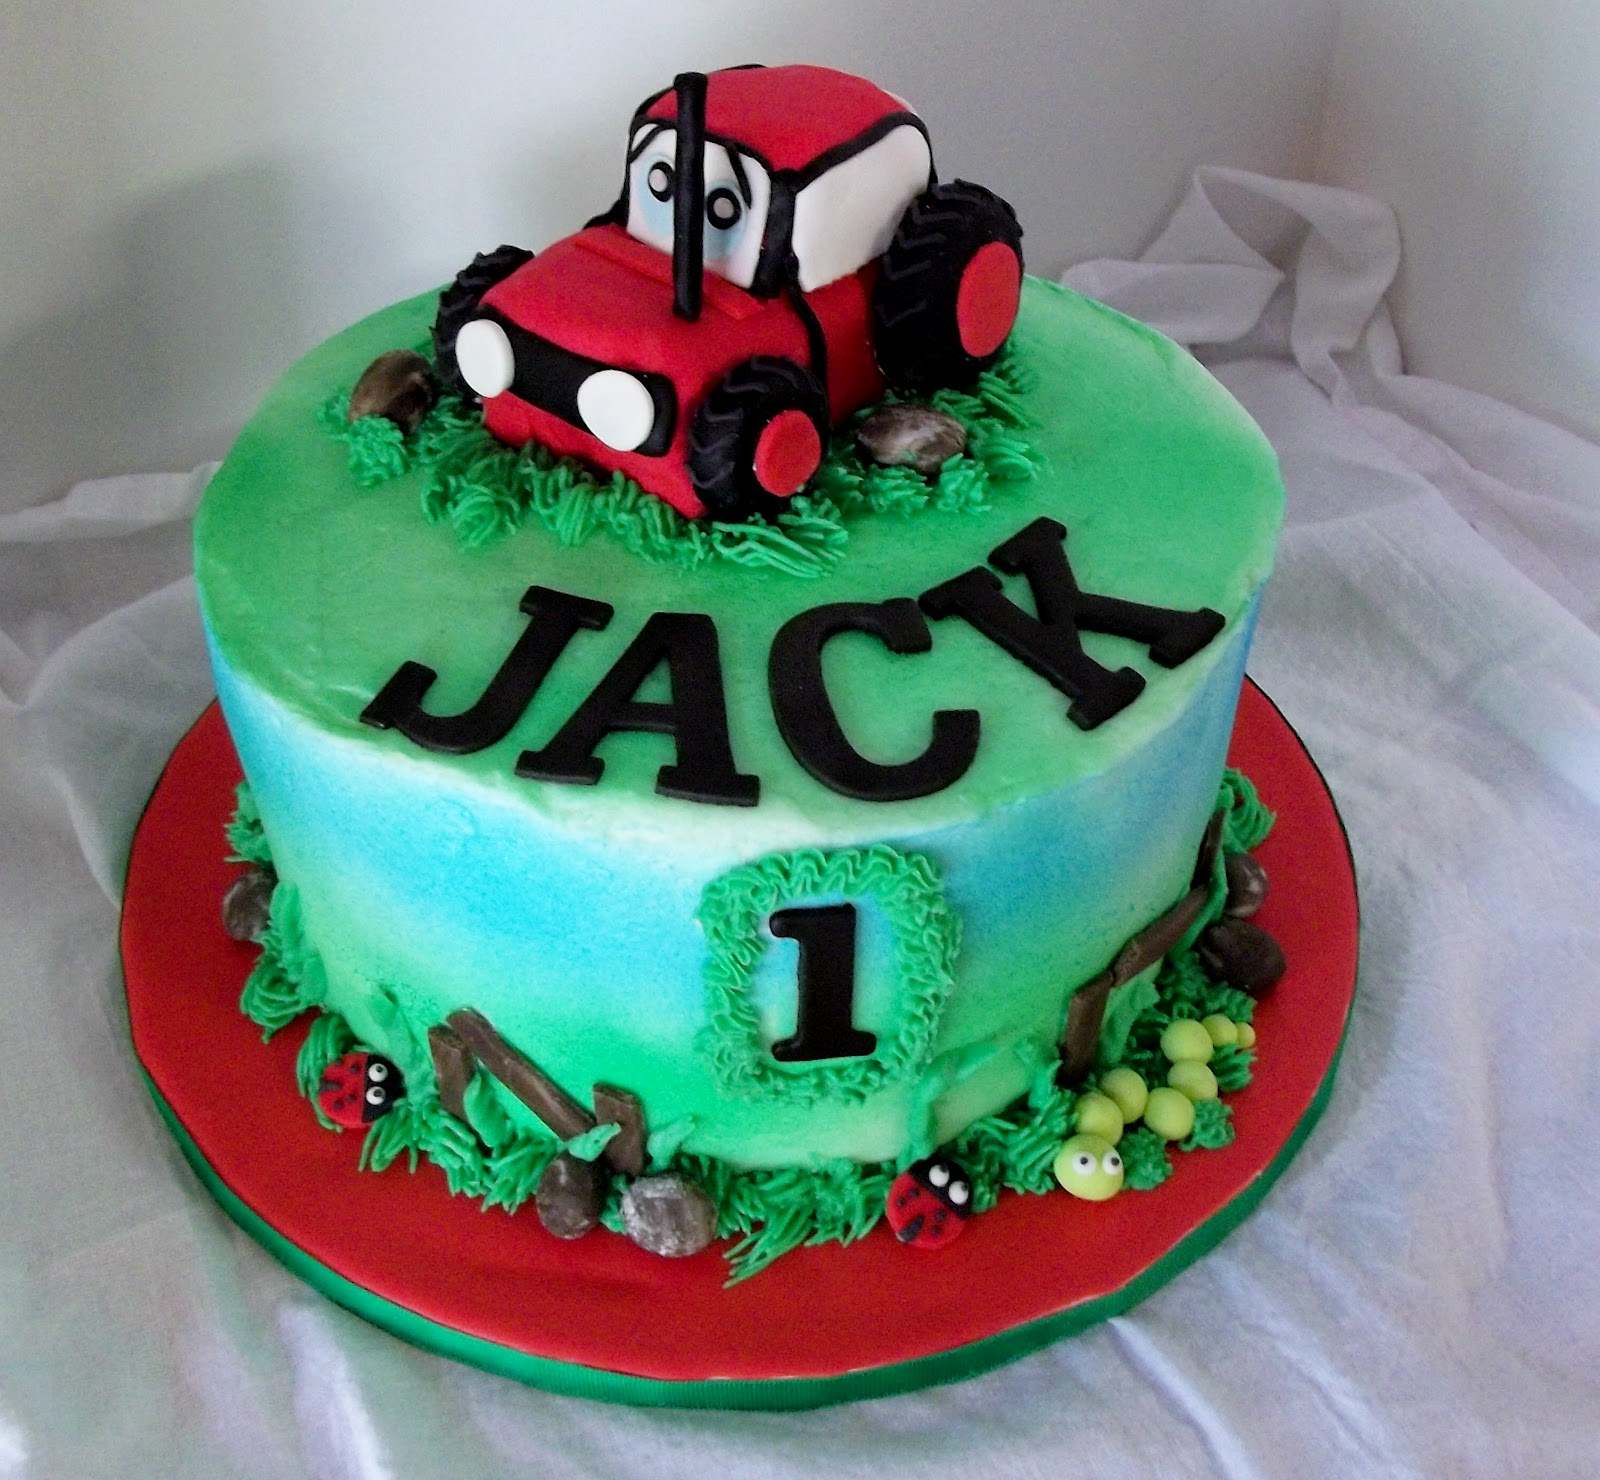 Bobbie's Cakes And Cookies: A Red Tractor Cake